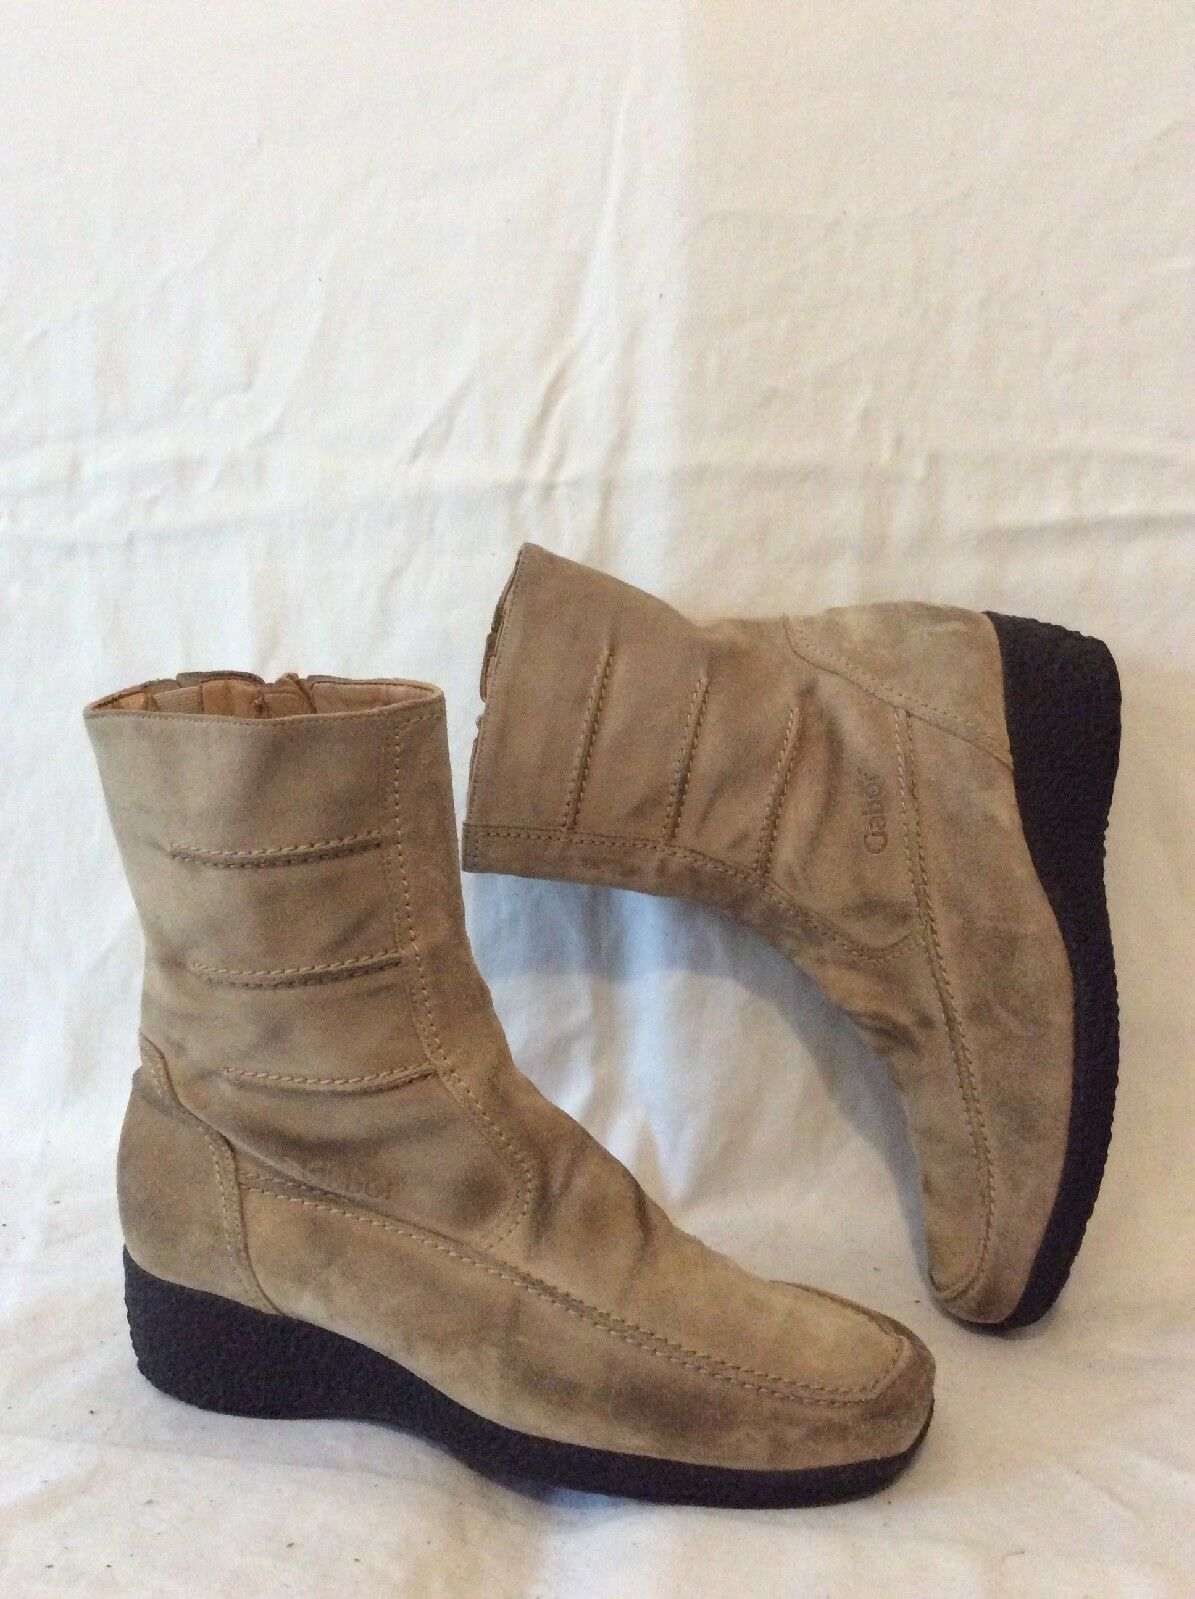 53b34d9b1456 Beige Mid Suede Boots Size 6 Calf Gabor axfrnf1662-Women s Boots ...